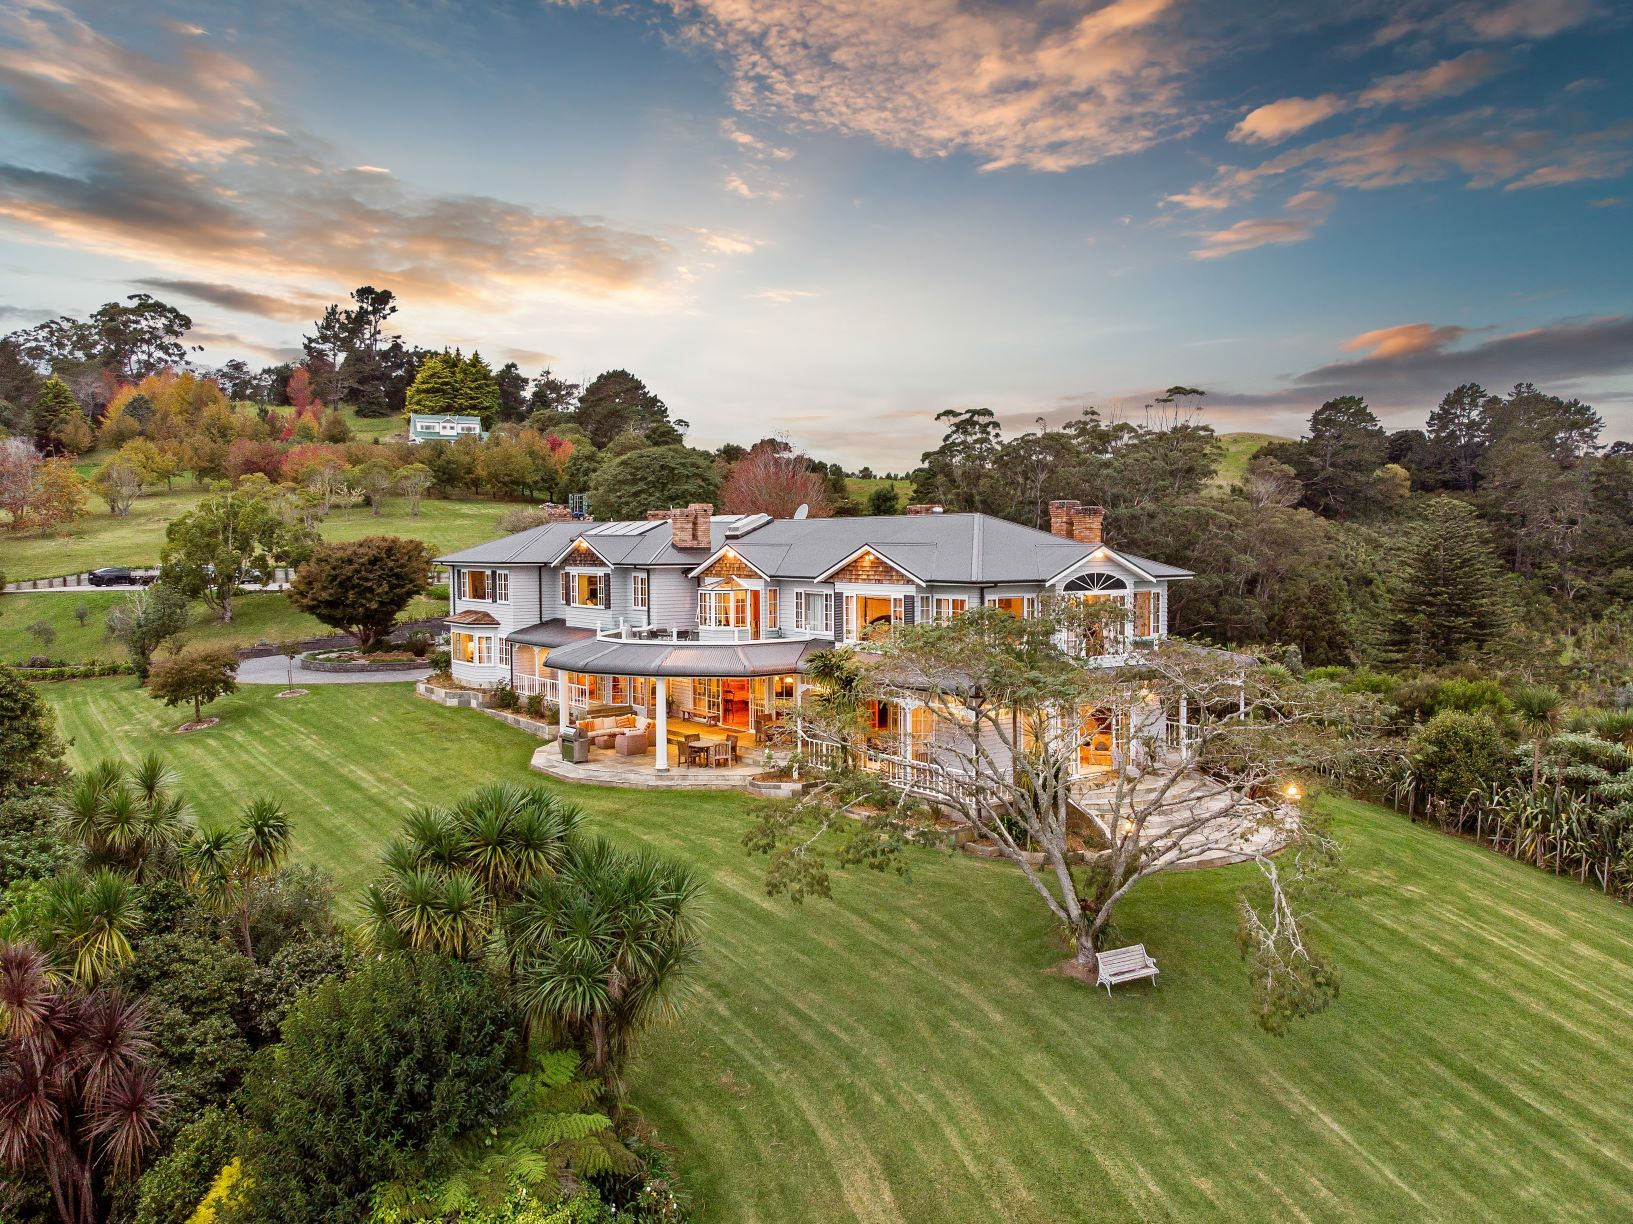 Russell $8.9m mansion up for sale allows guests to arrive by helicopter or superyacht